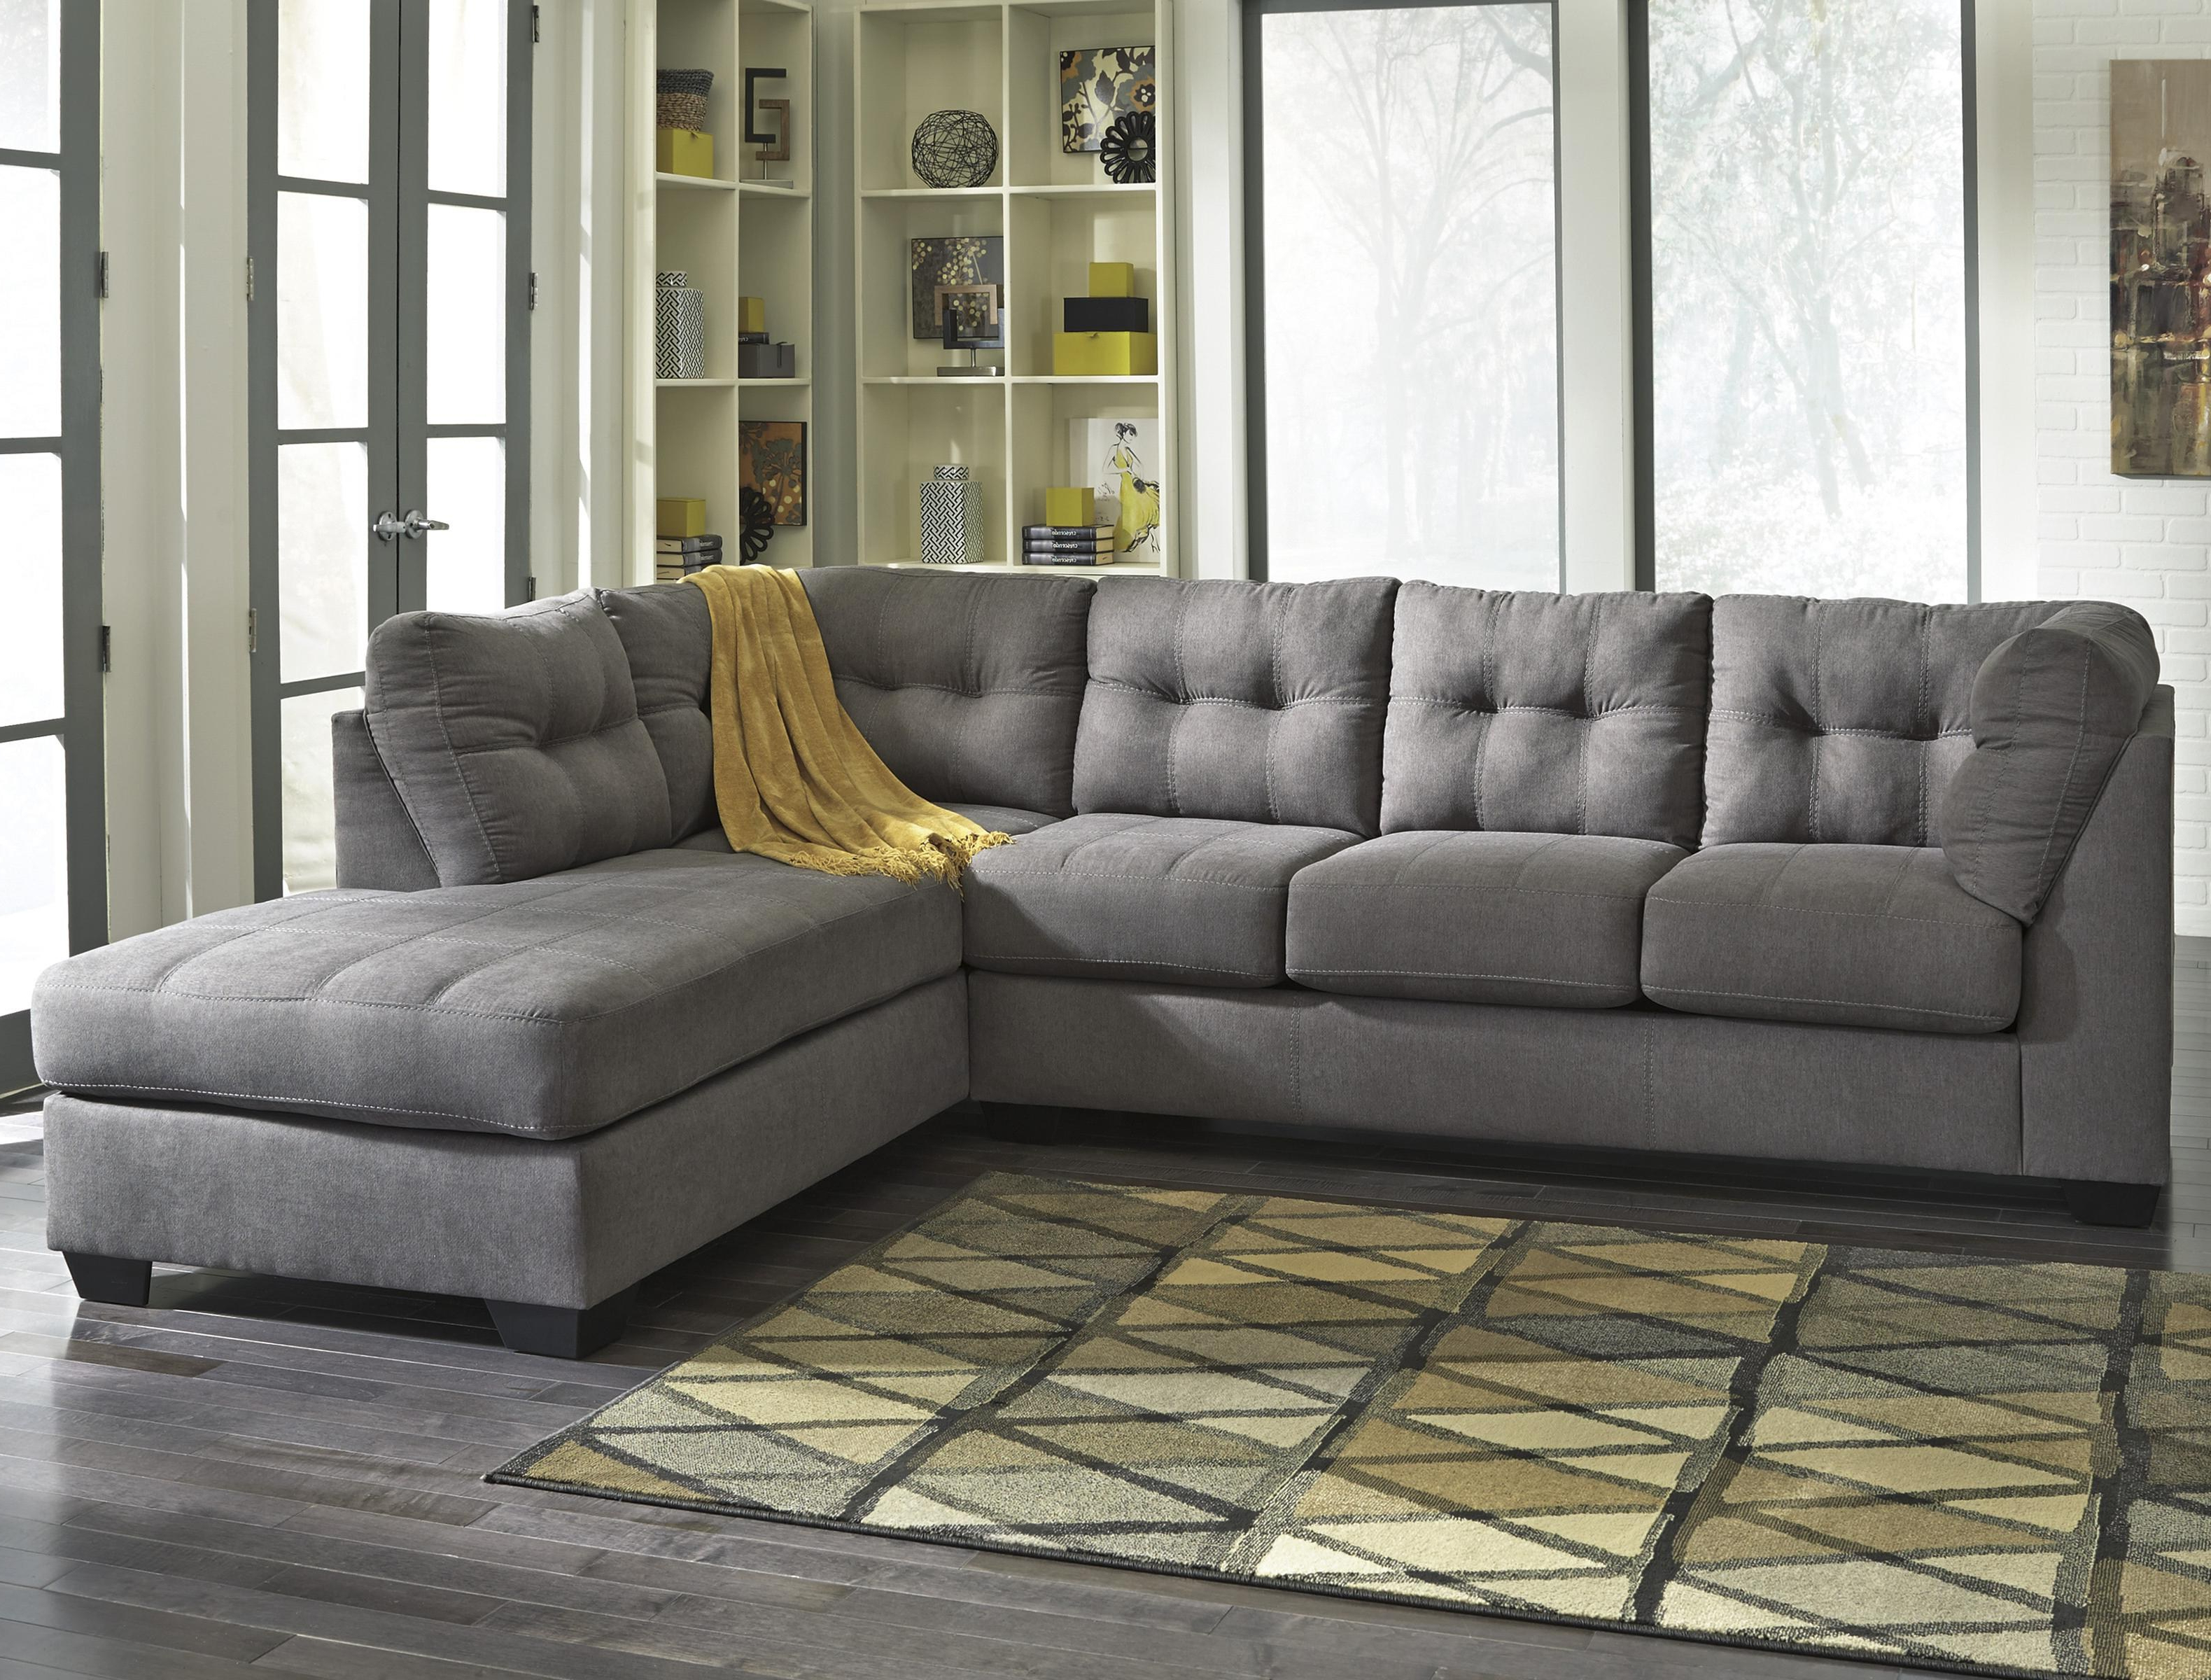 What To Know Before Buying A 3 Piece Sectional Sofa – Elites Home Decor Intended For Newest Kerri 2 Piece Sectionals With Raf Chaise (View 19 of 20)